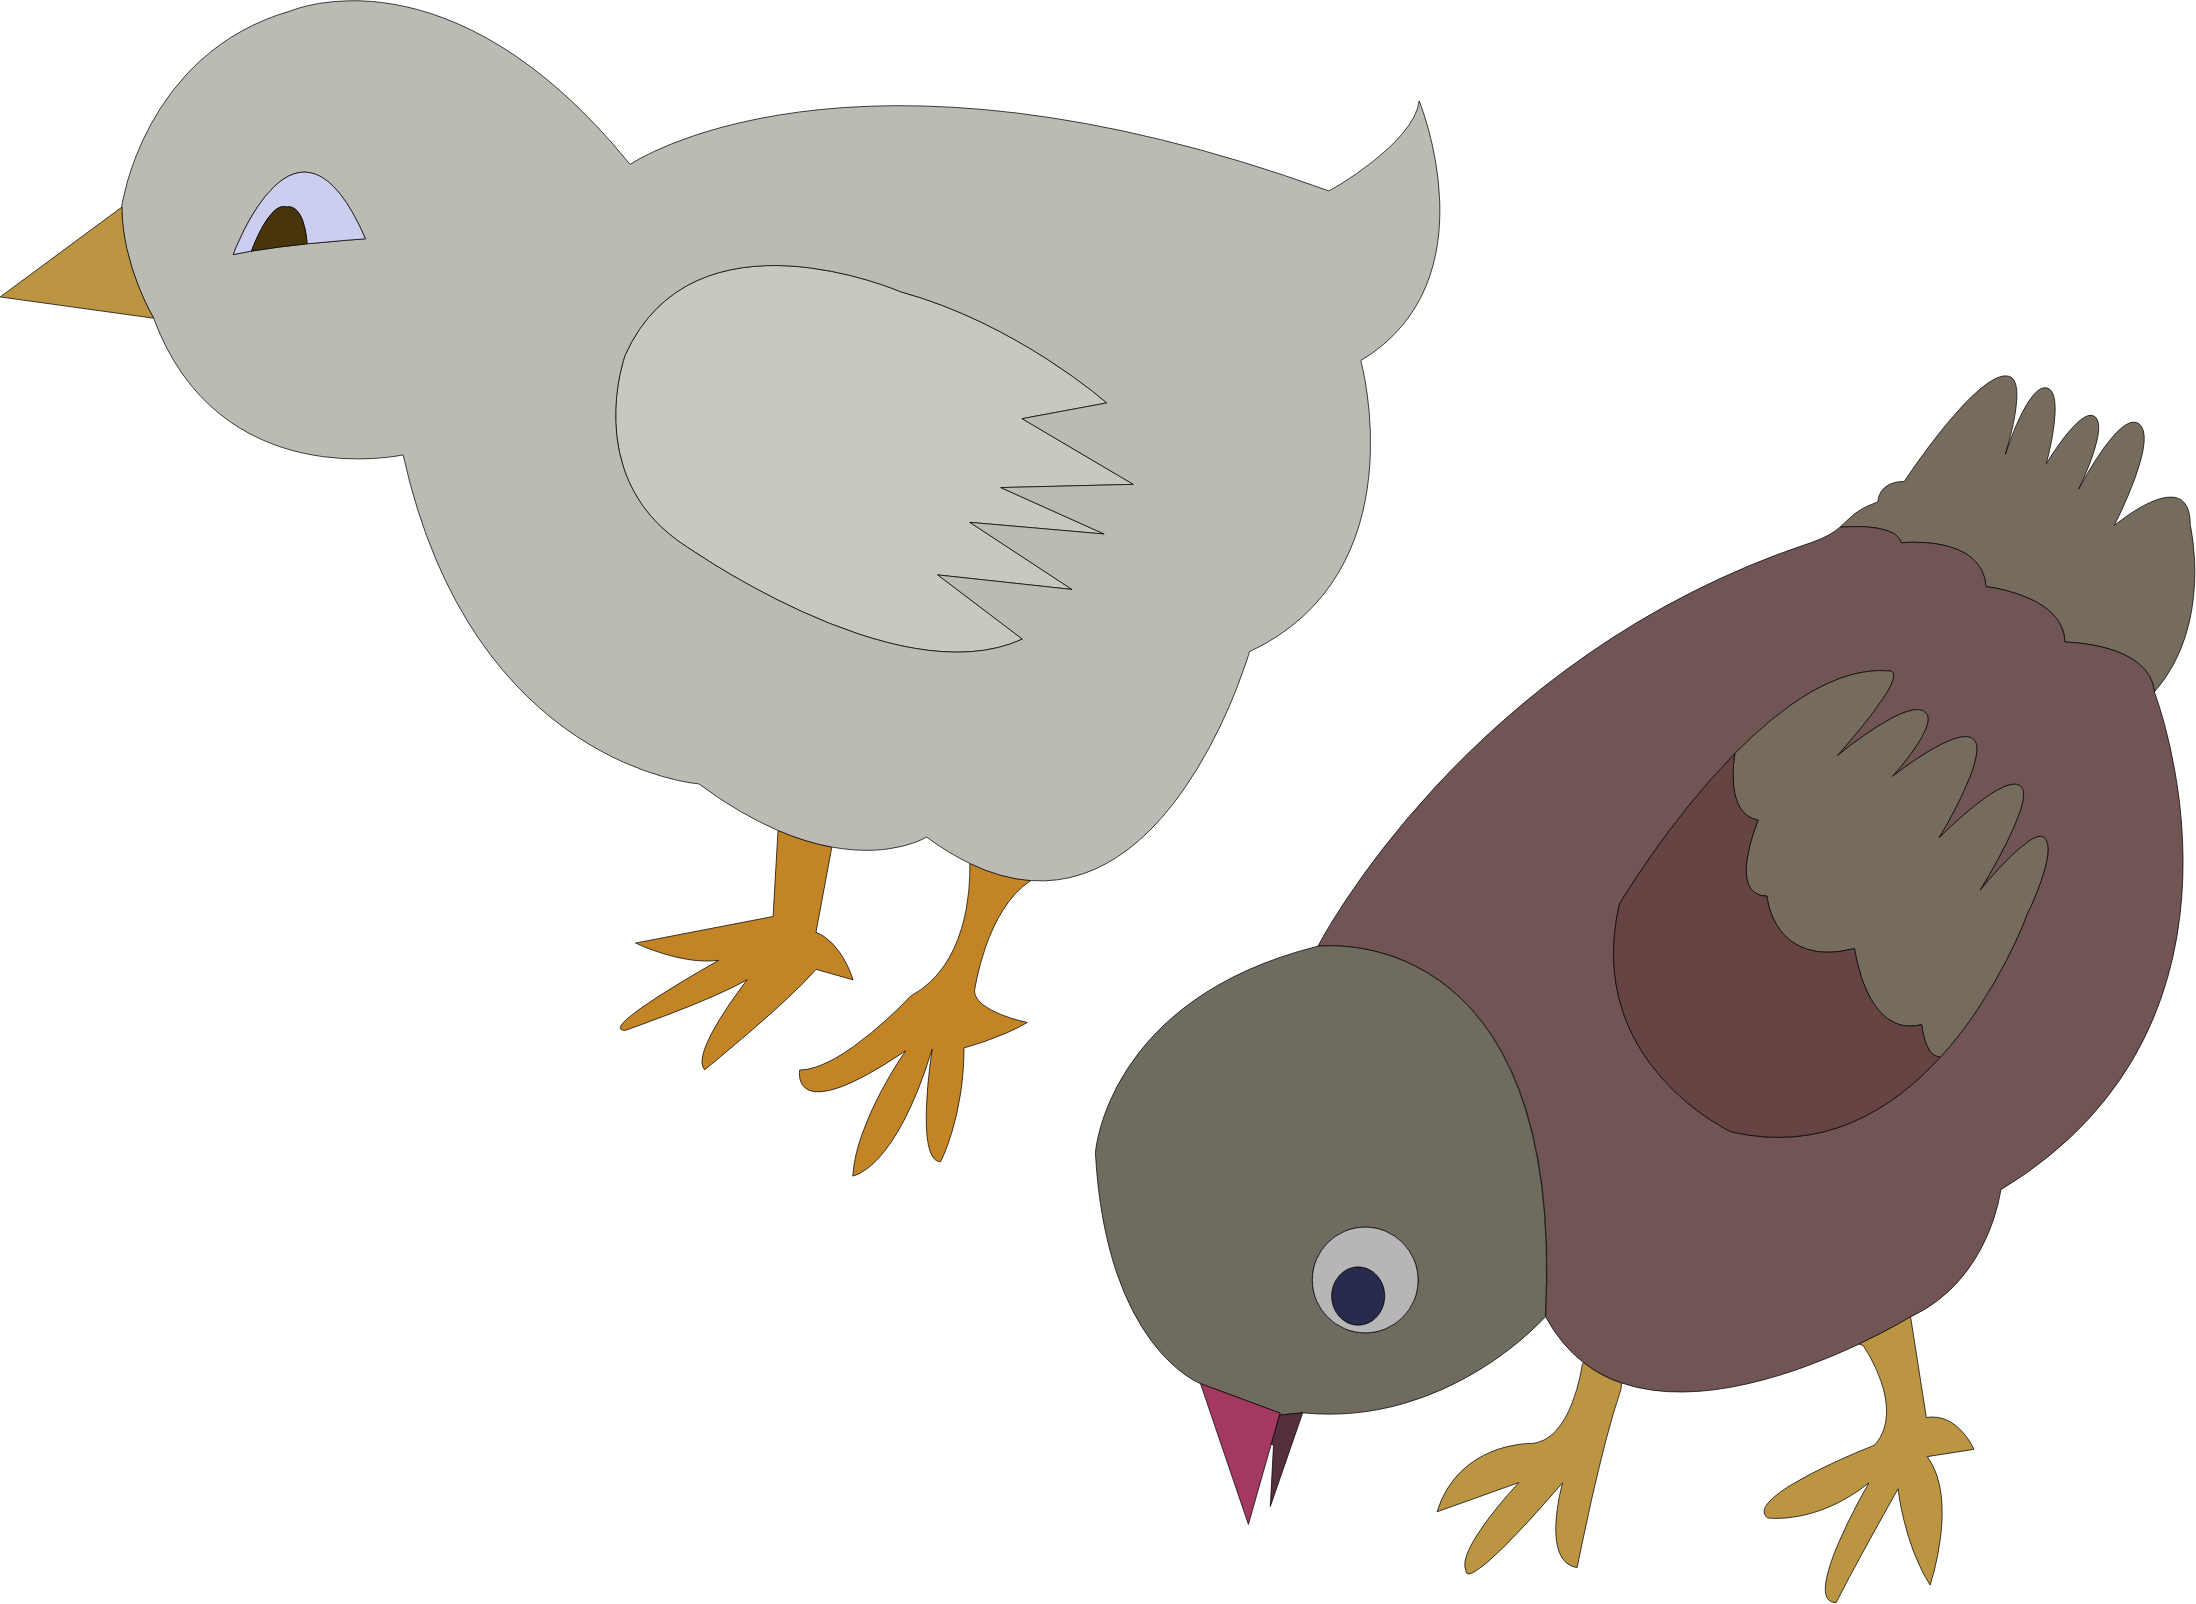 chickens-002-figure-color by lobaz.r